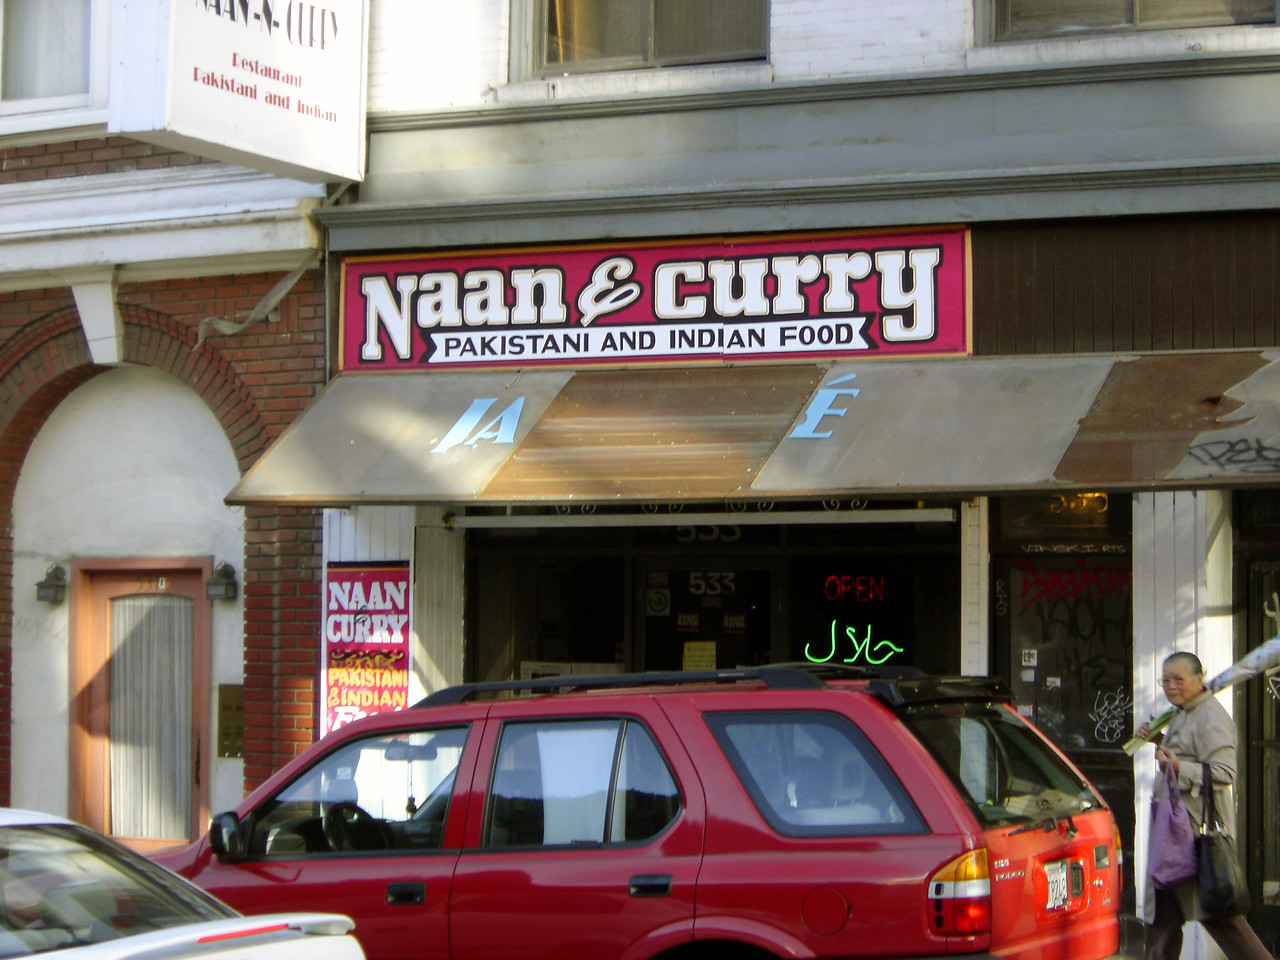 """The Holy Land. This place is insane. Rule #1 of Chicken Tikka Masala; You Do Not Talk about Naan & Curry. Rule #2 of Chicken Tikka Masala; You will order your Chicken Tikka Masala """"Hot"""" and eat the jalepenos with some of the gravy and Garlic Naan. Mmmmmmm...."""